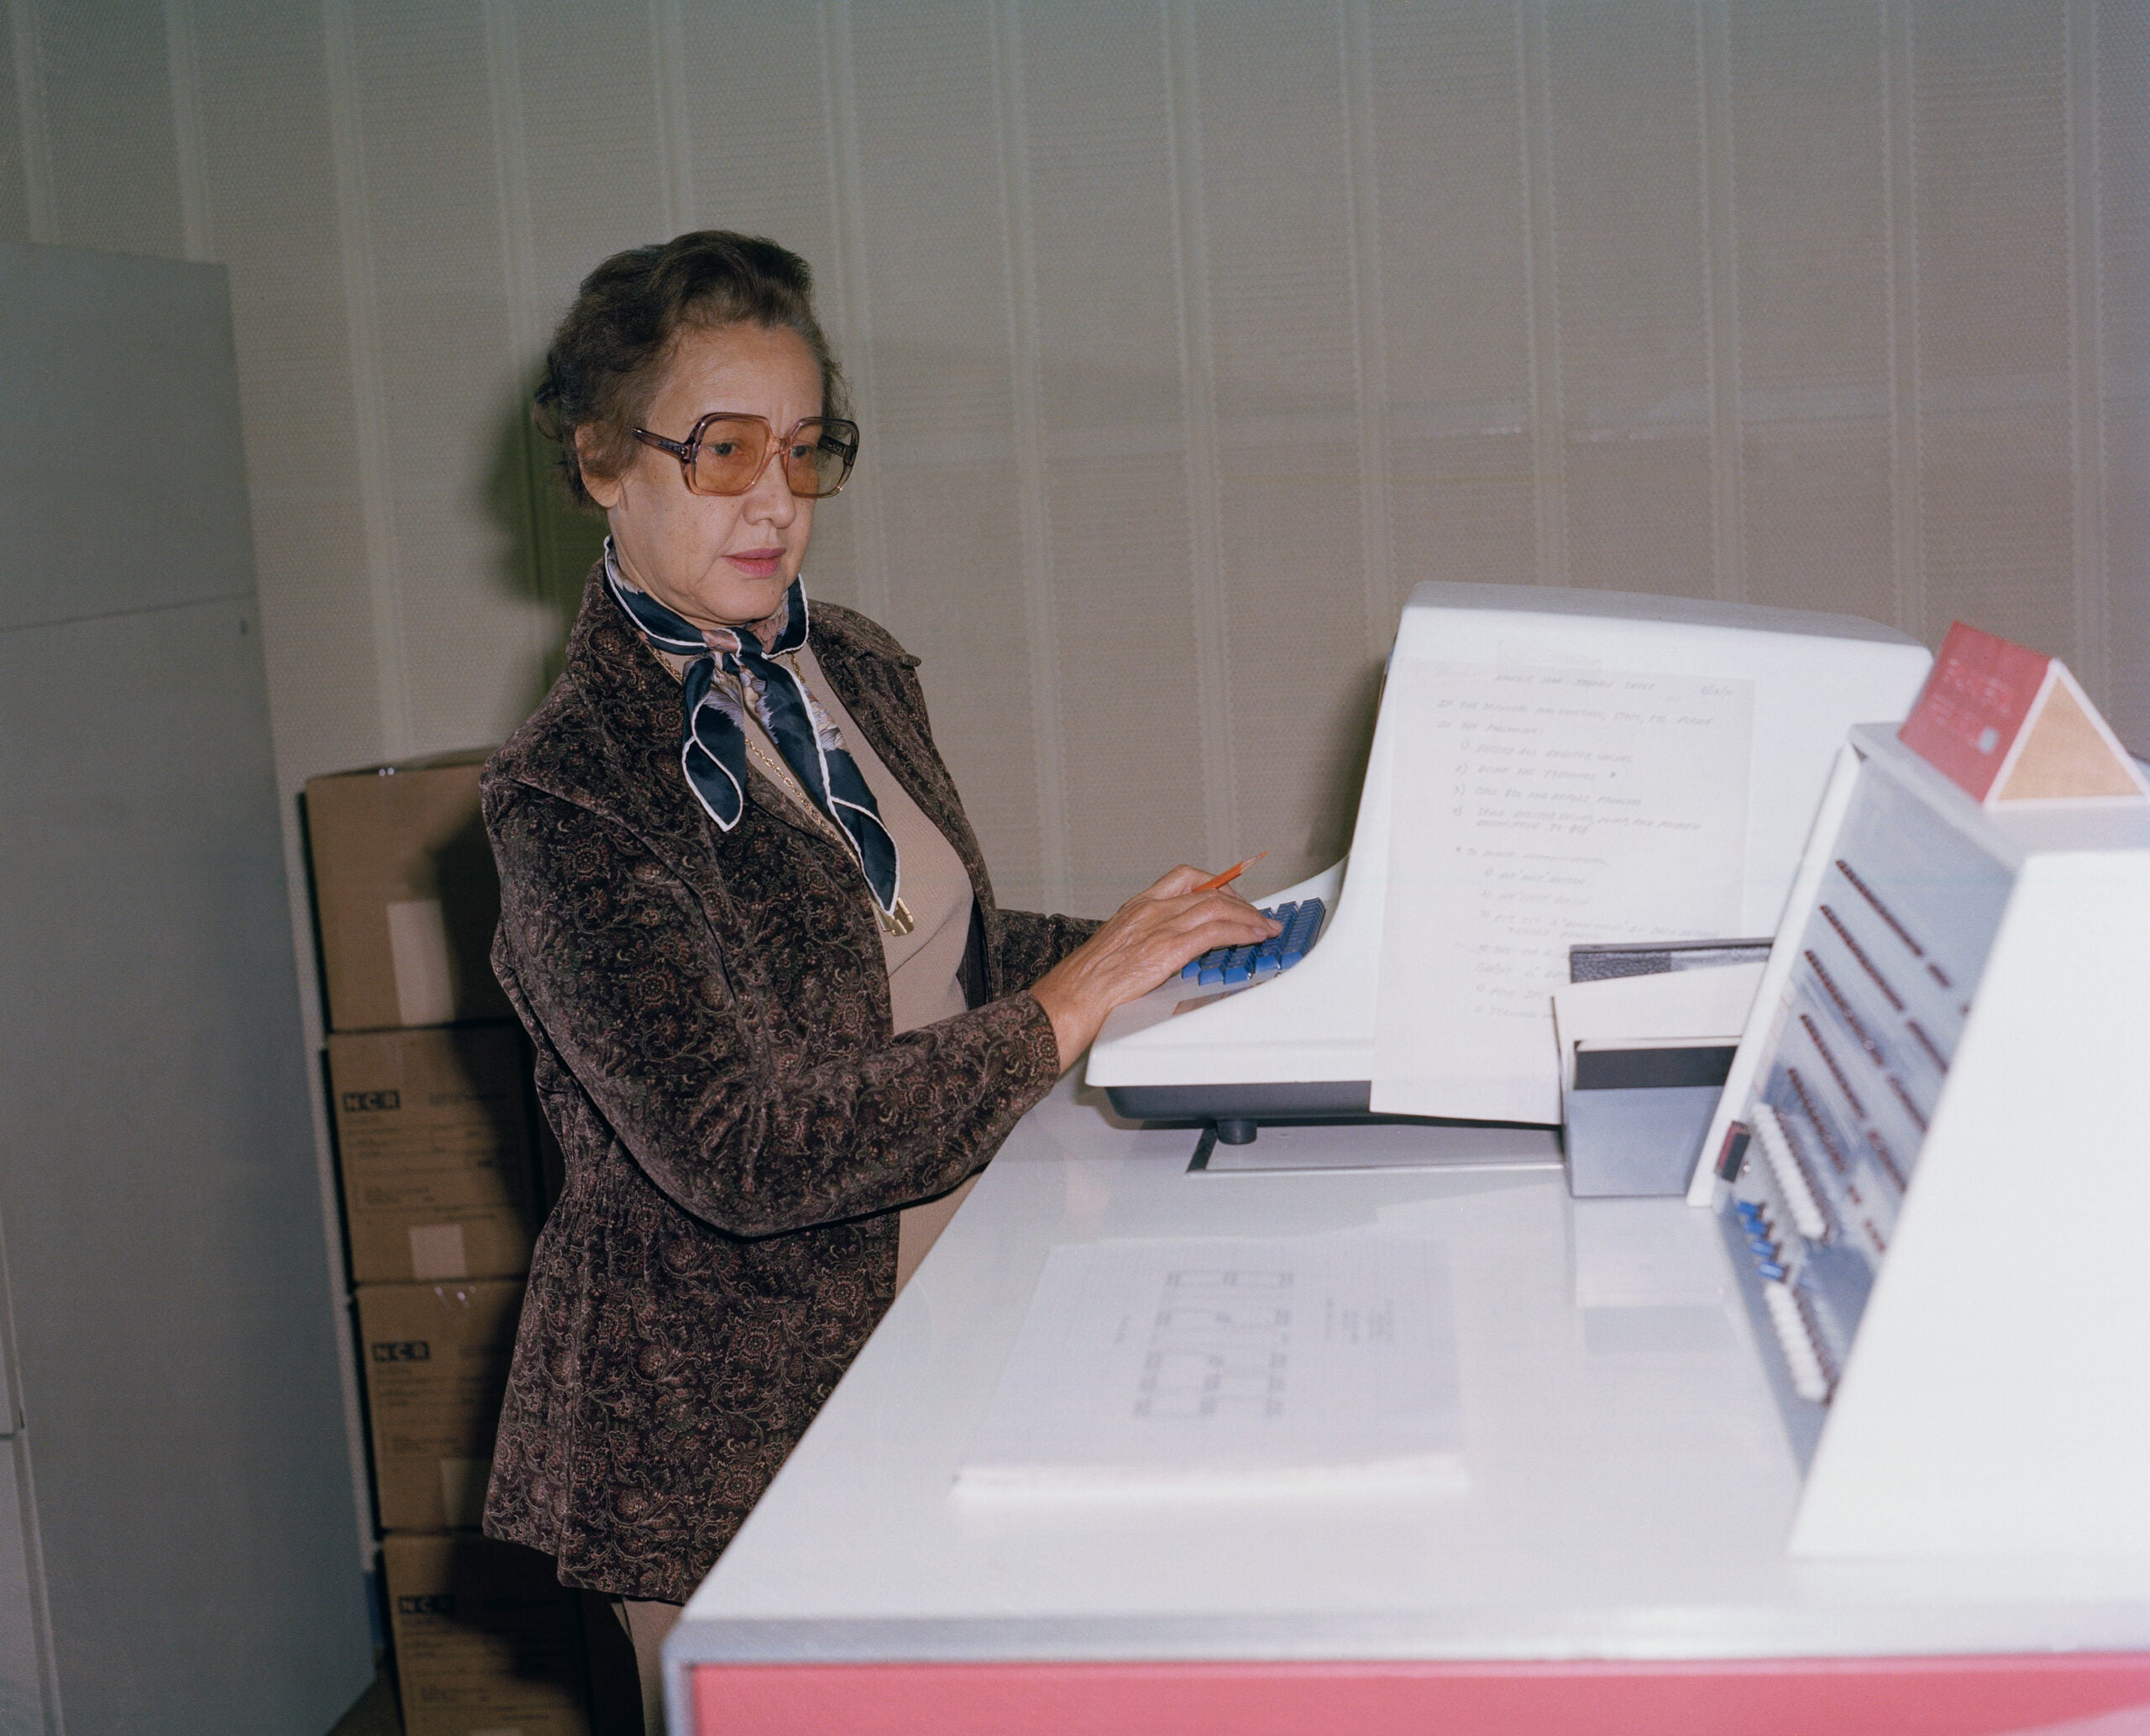 Katherine Johnson at NASA Langley Research Center in 1980